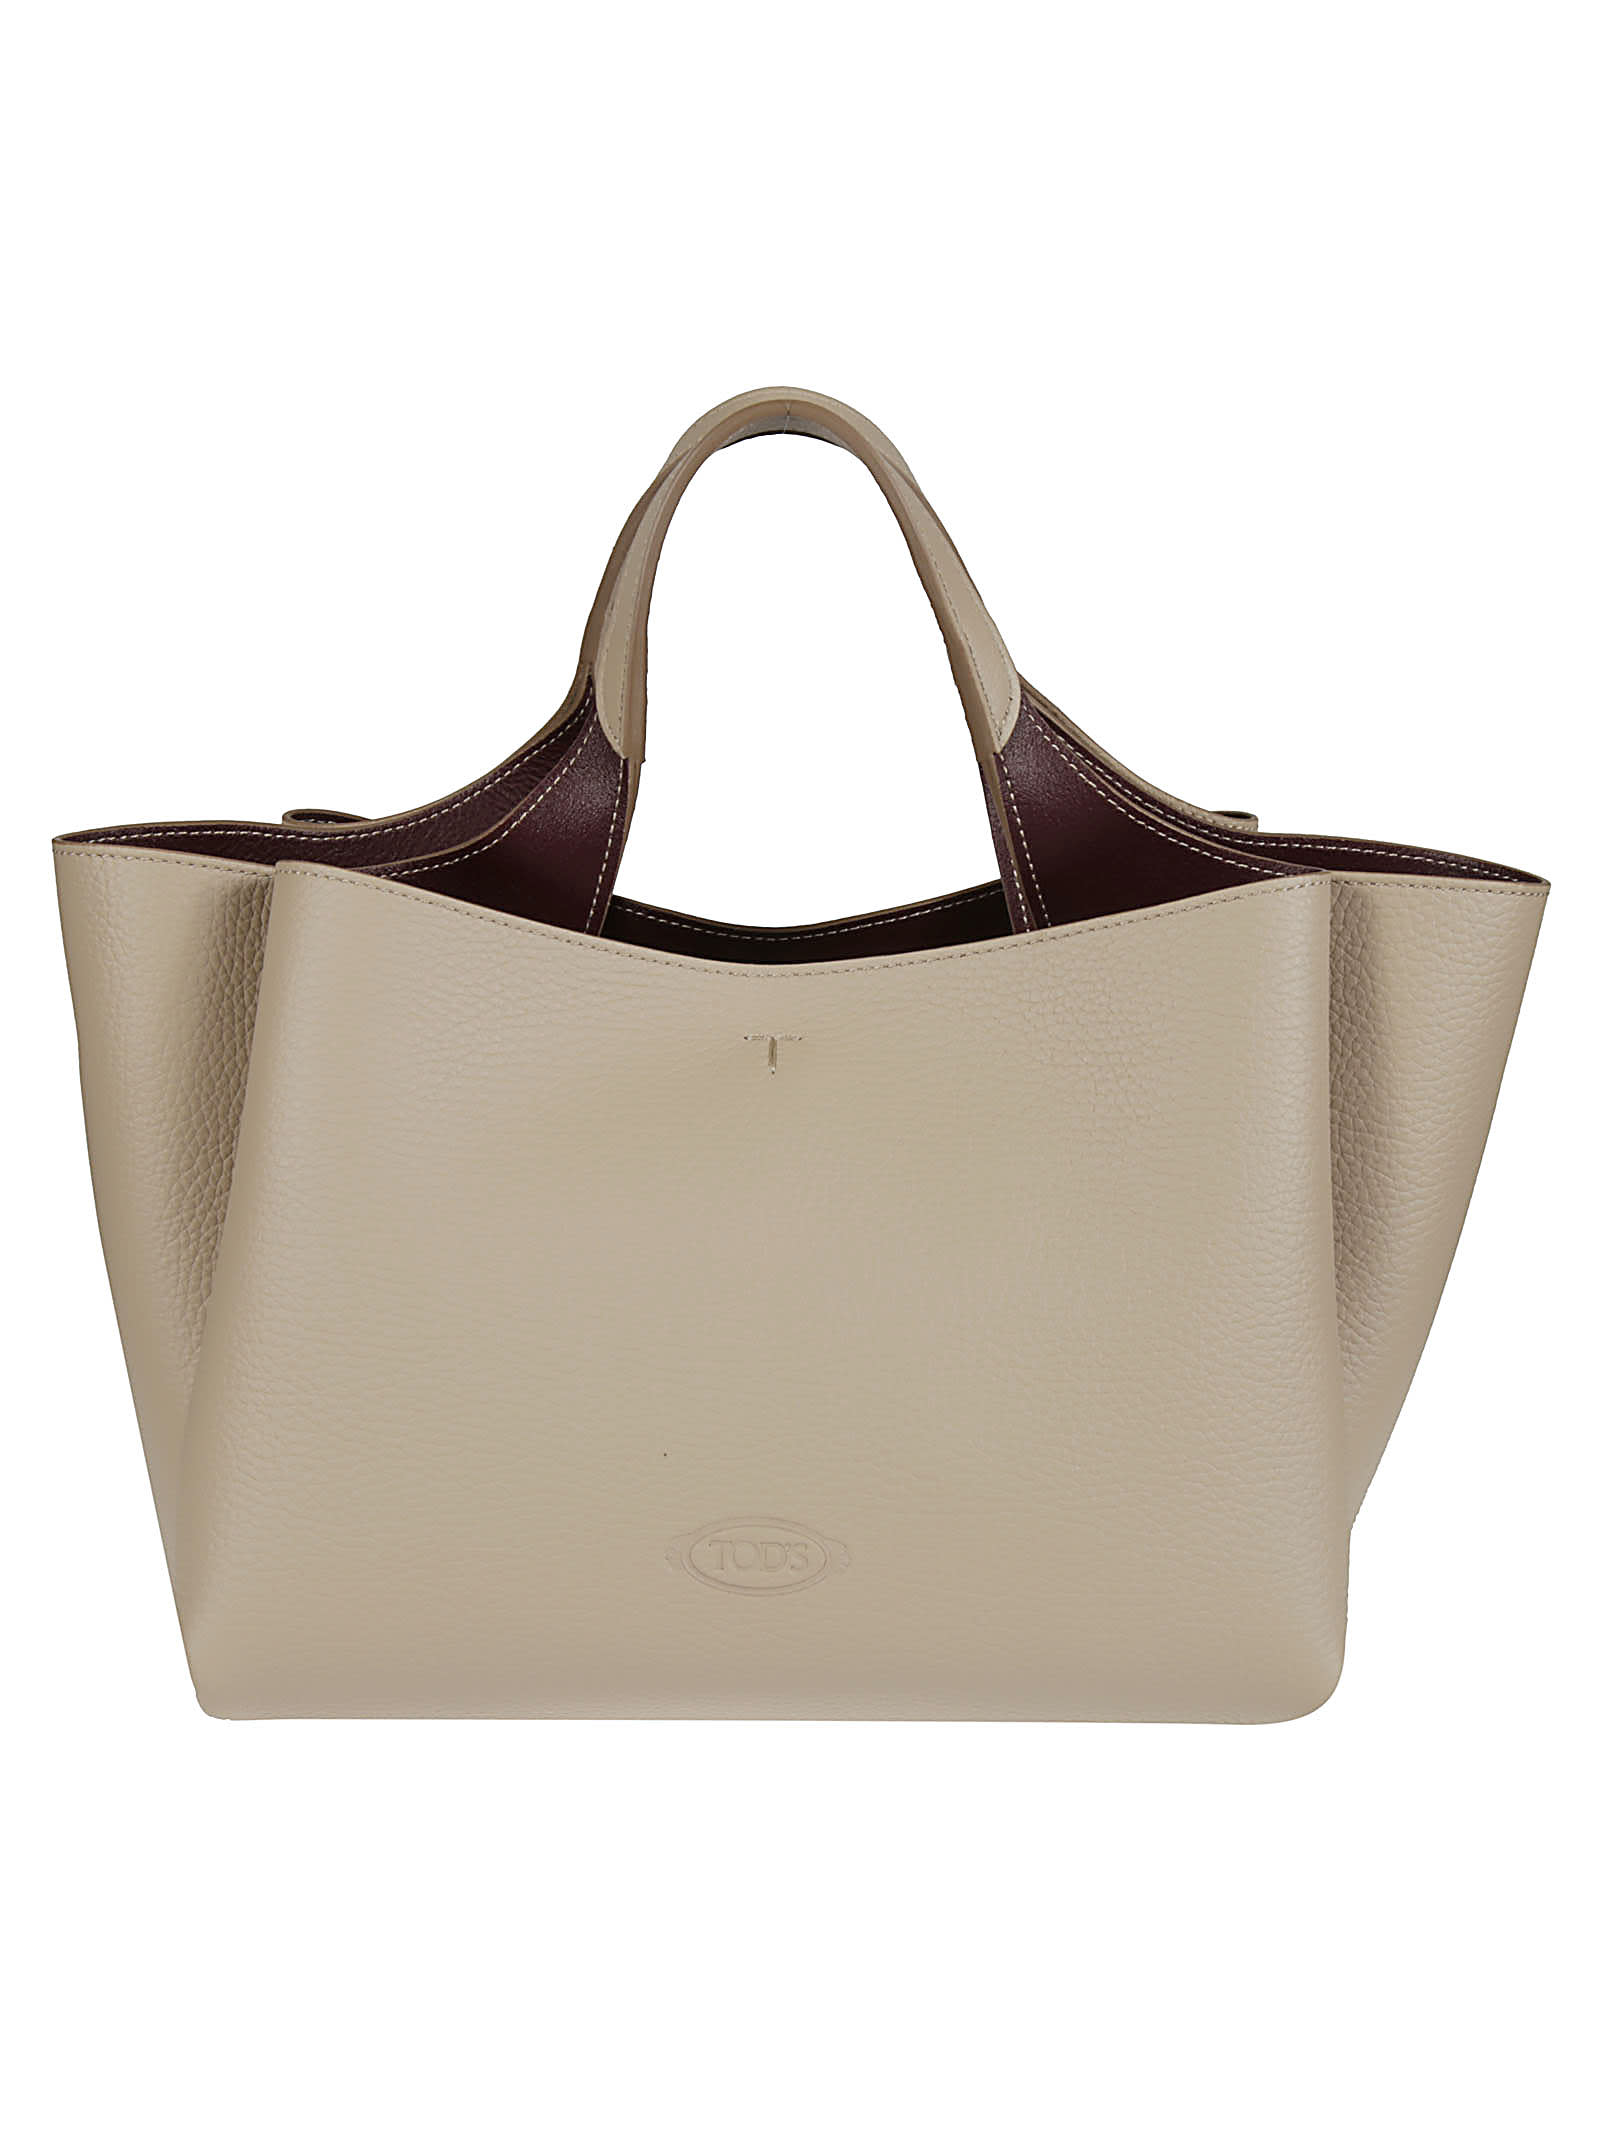 Tod's Florida Double Tote In Sasso/bordeaux